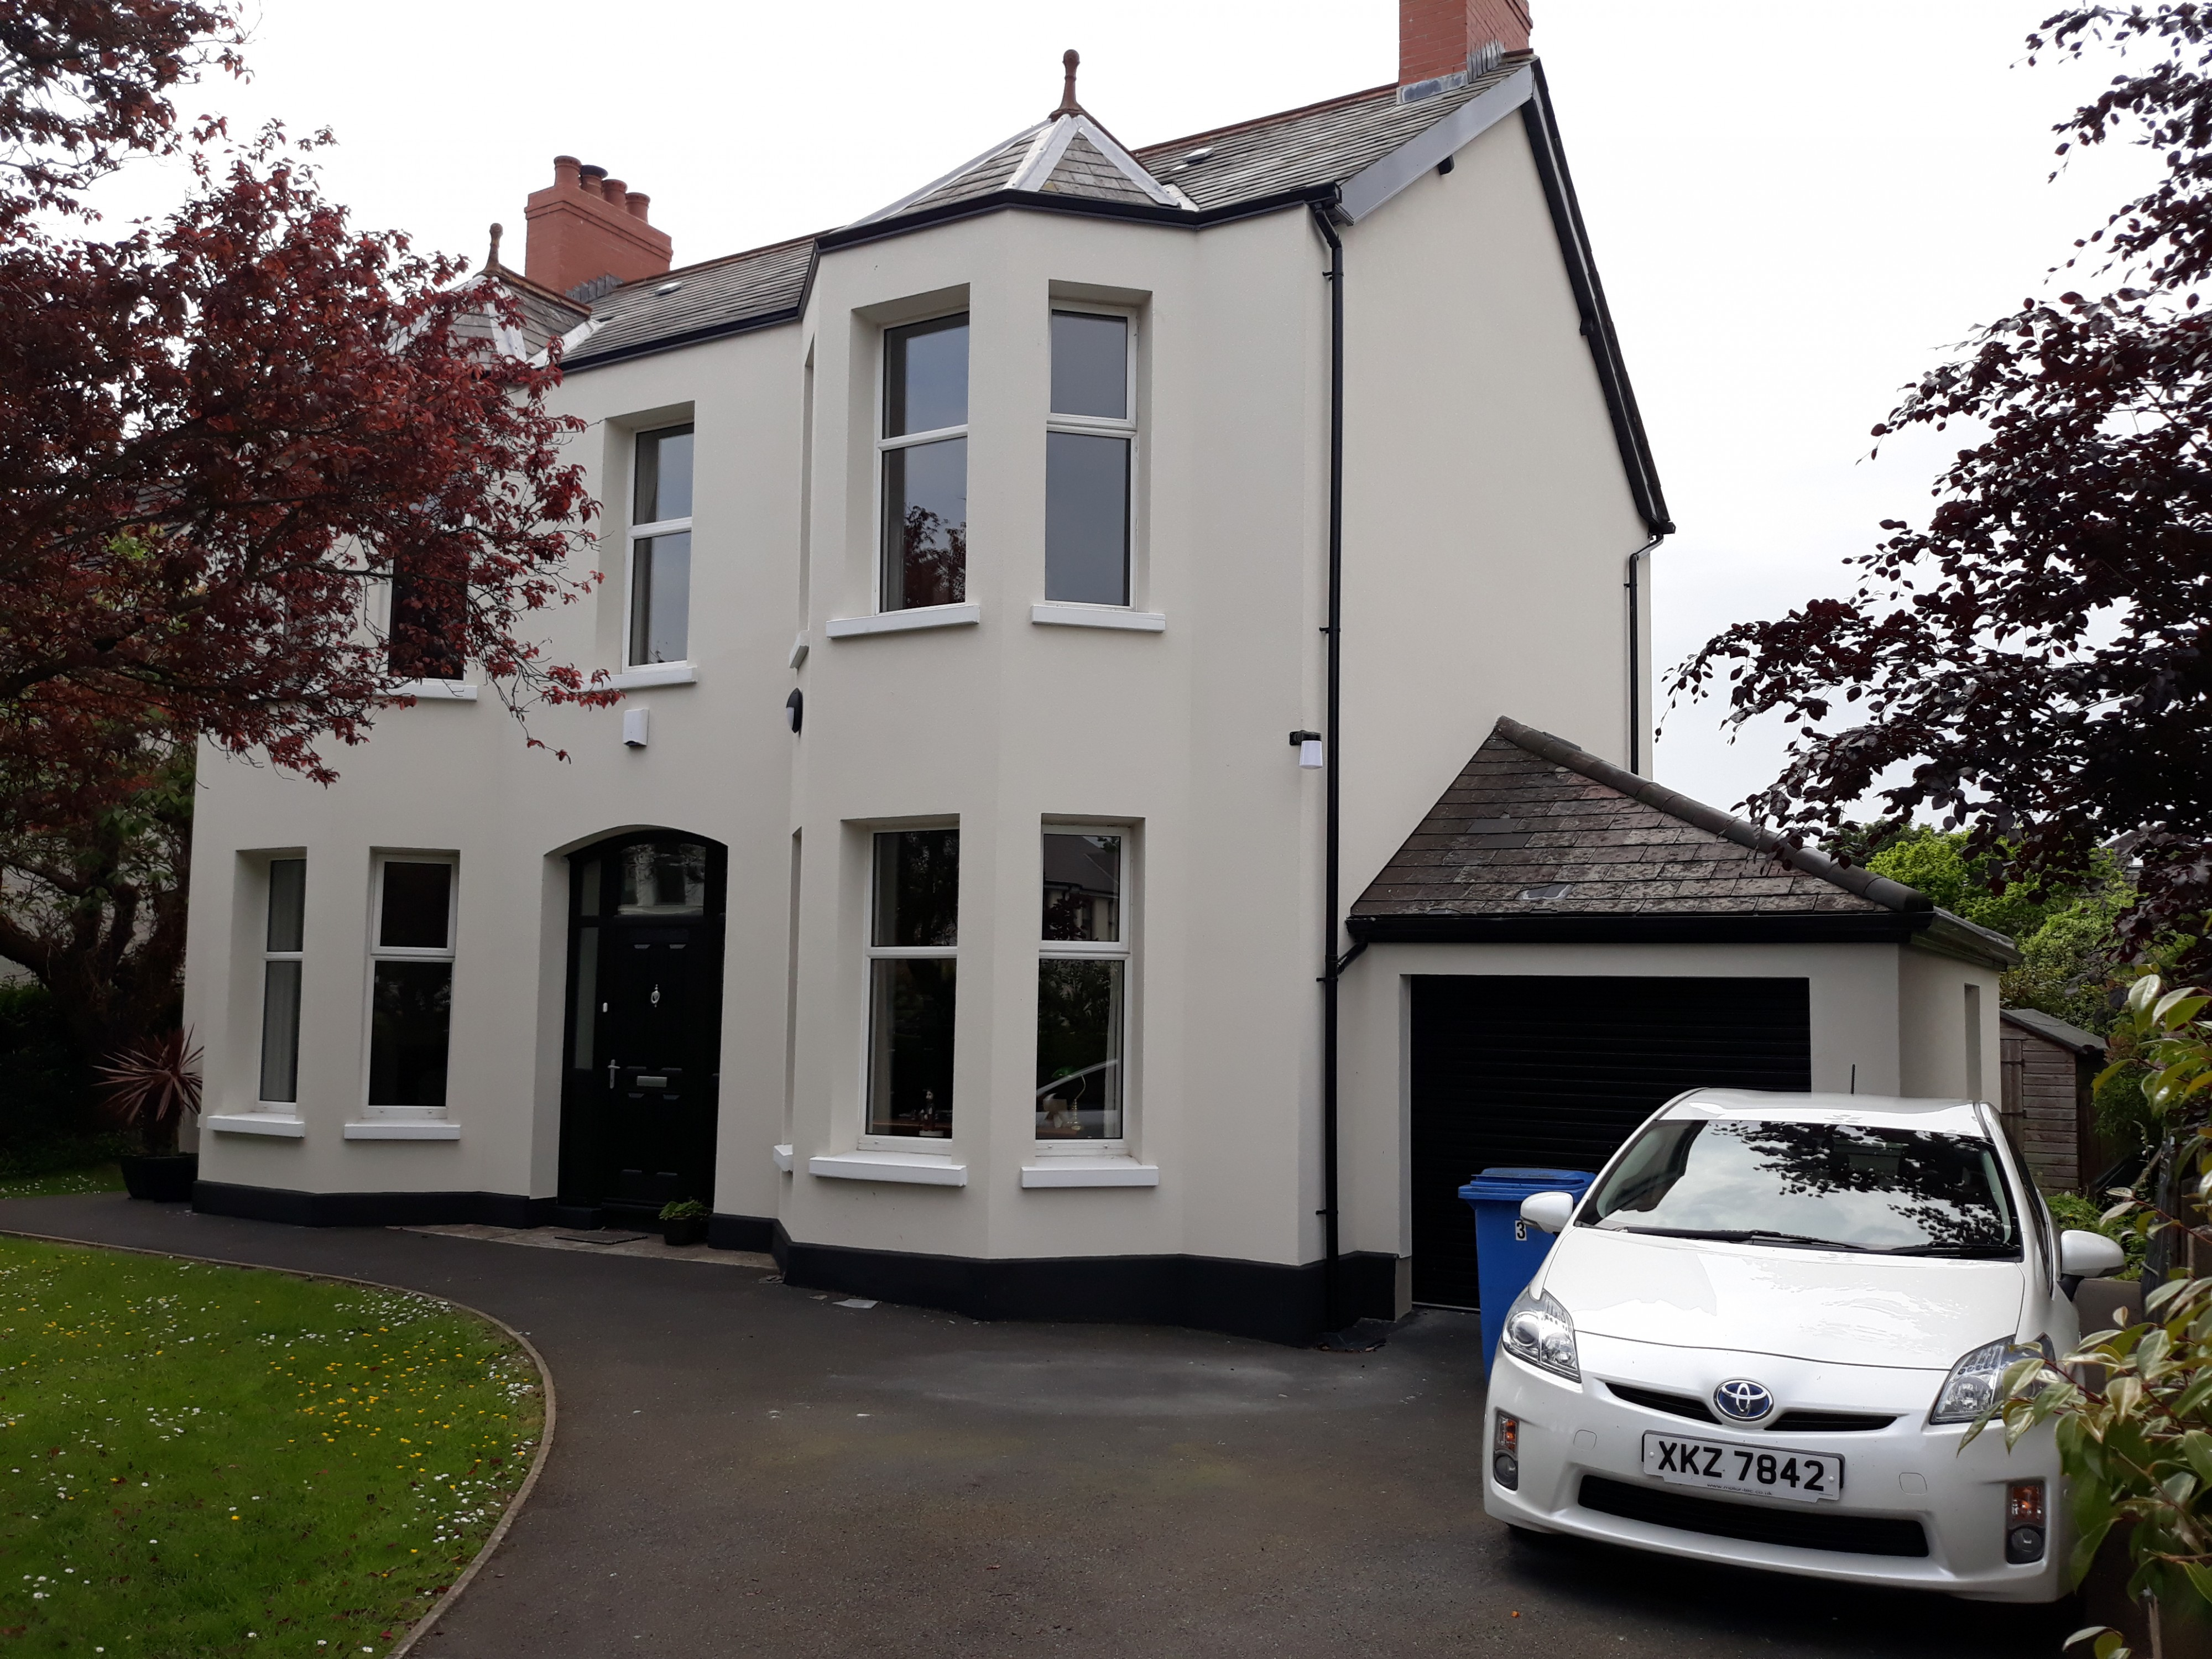 Image of External Wall Insulation. Over a hundred years old this Bangor home looks as good as new!